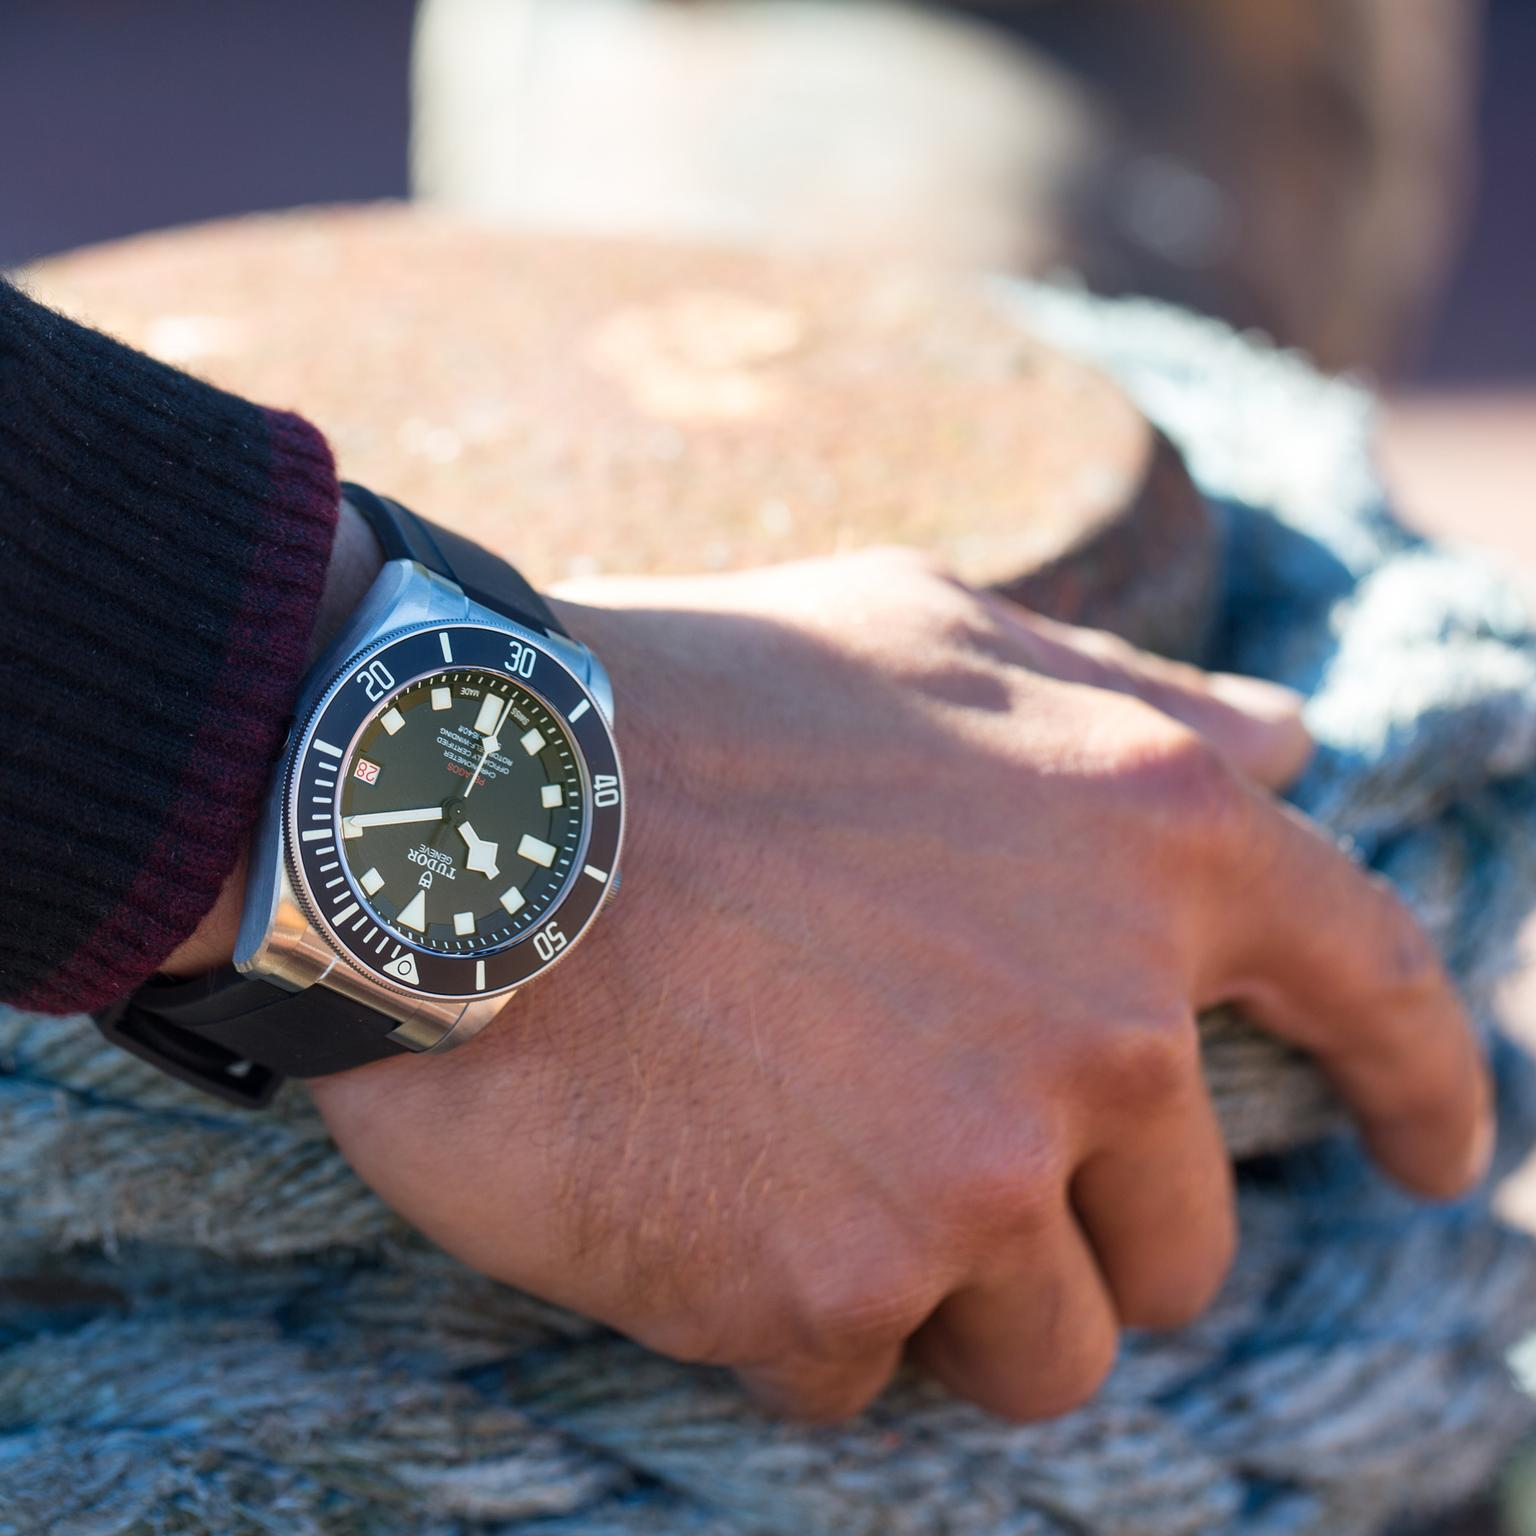 Tudor Pelagos LHD watch model shot